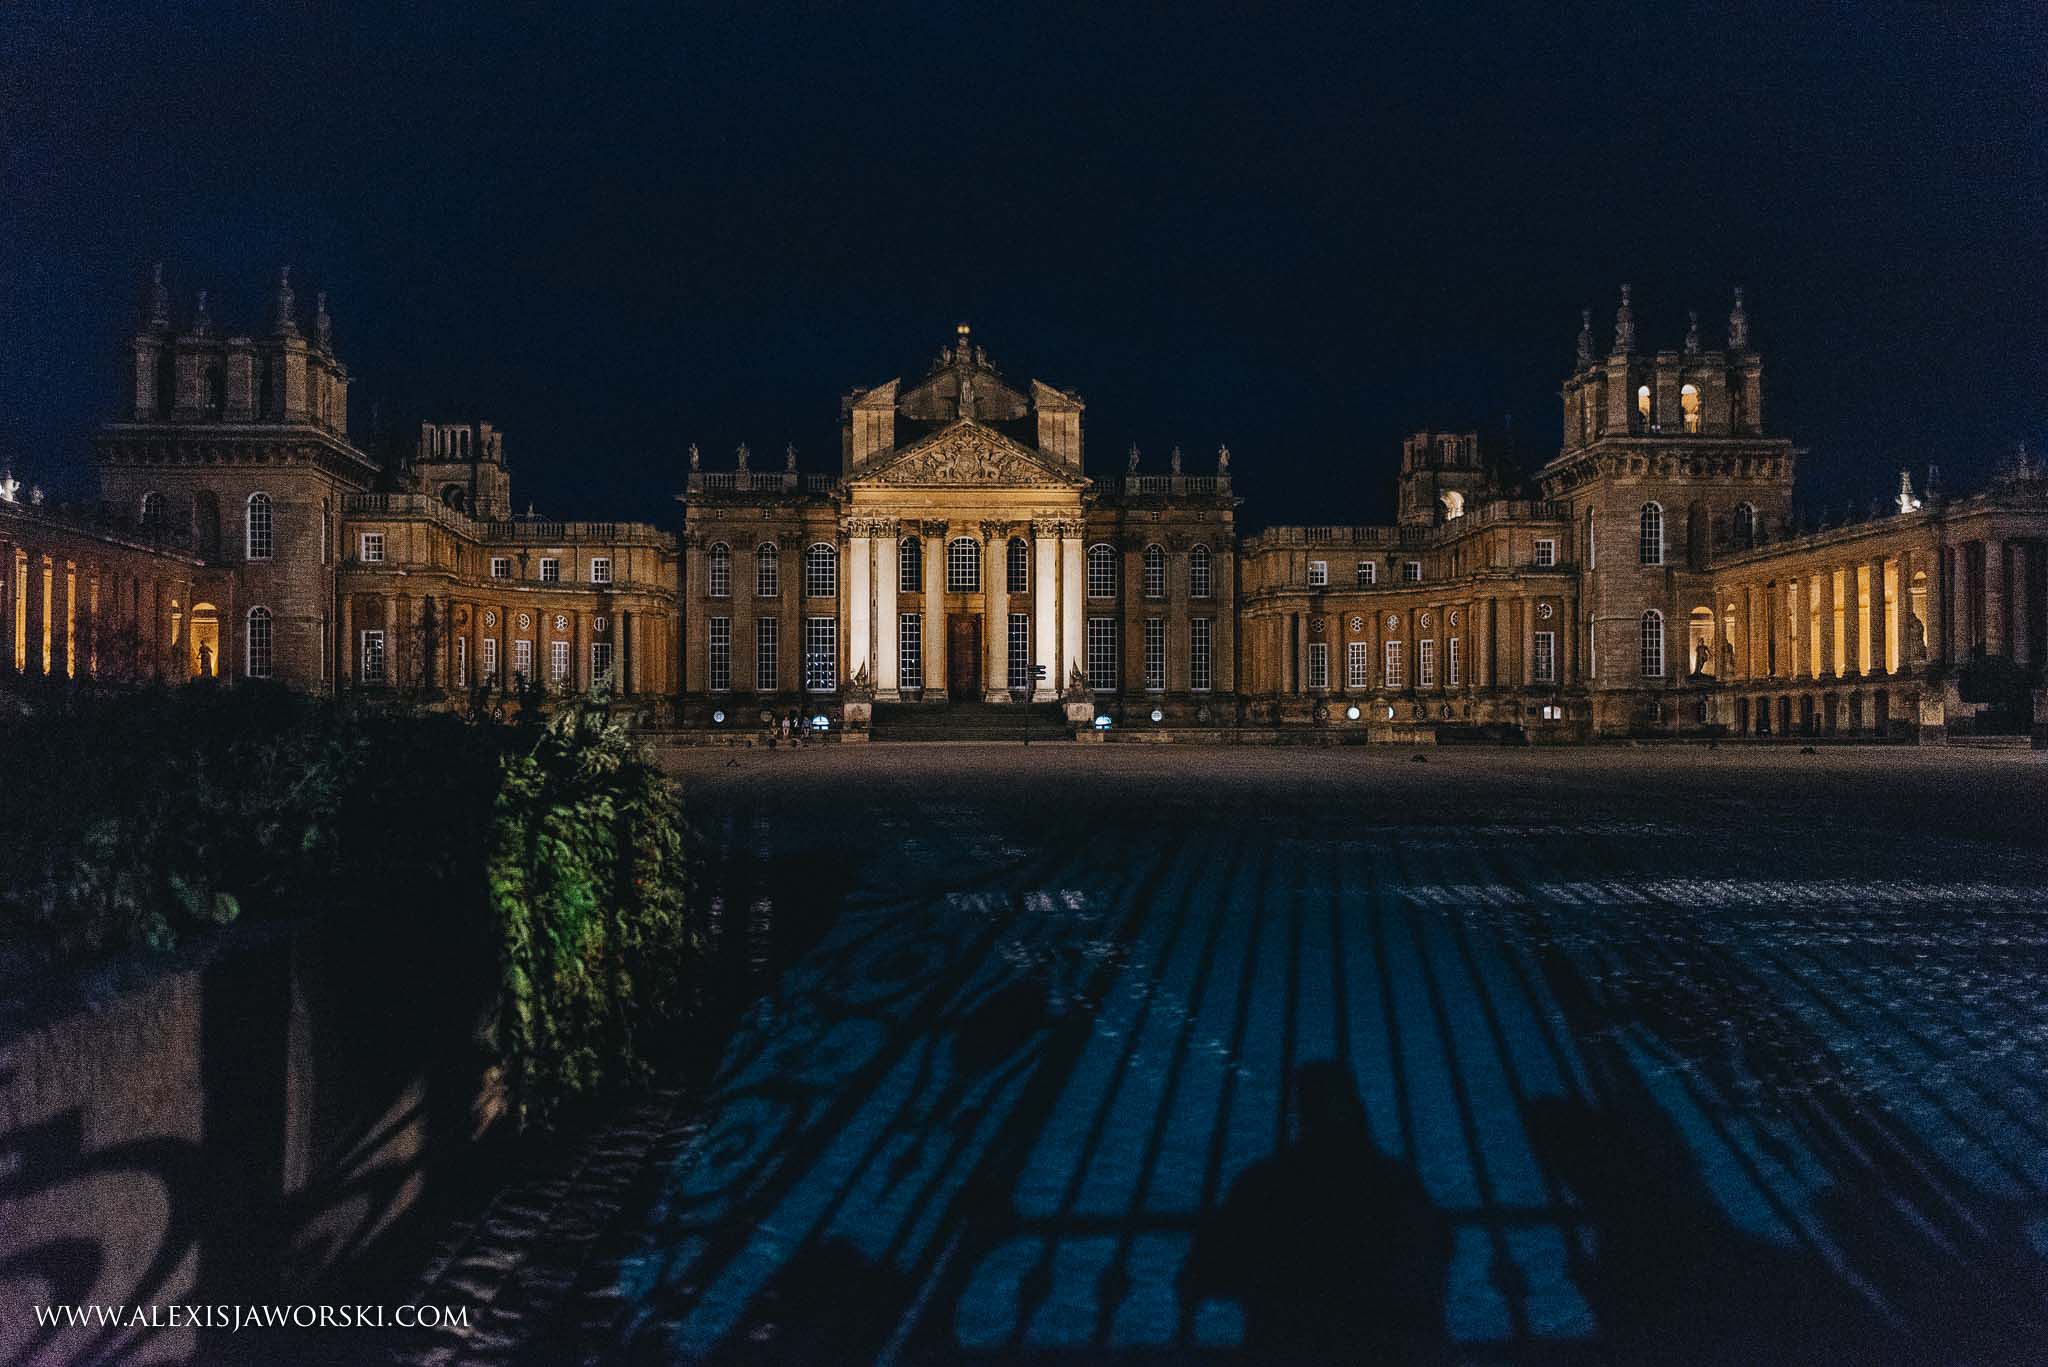 night view of Blenheim Palace